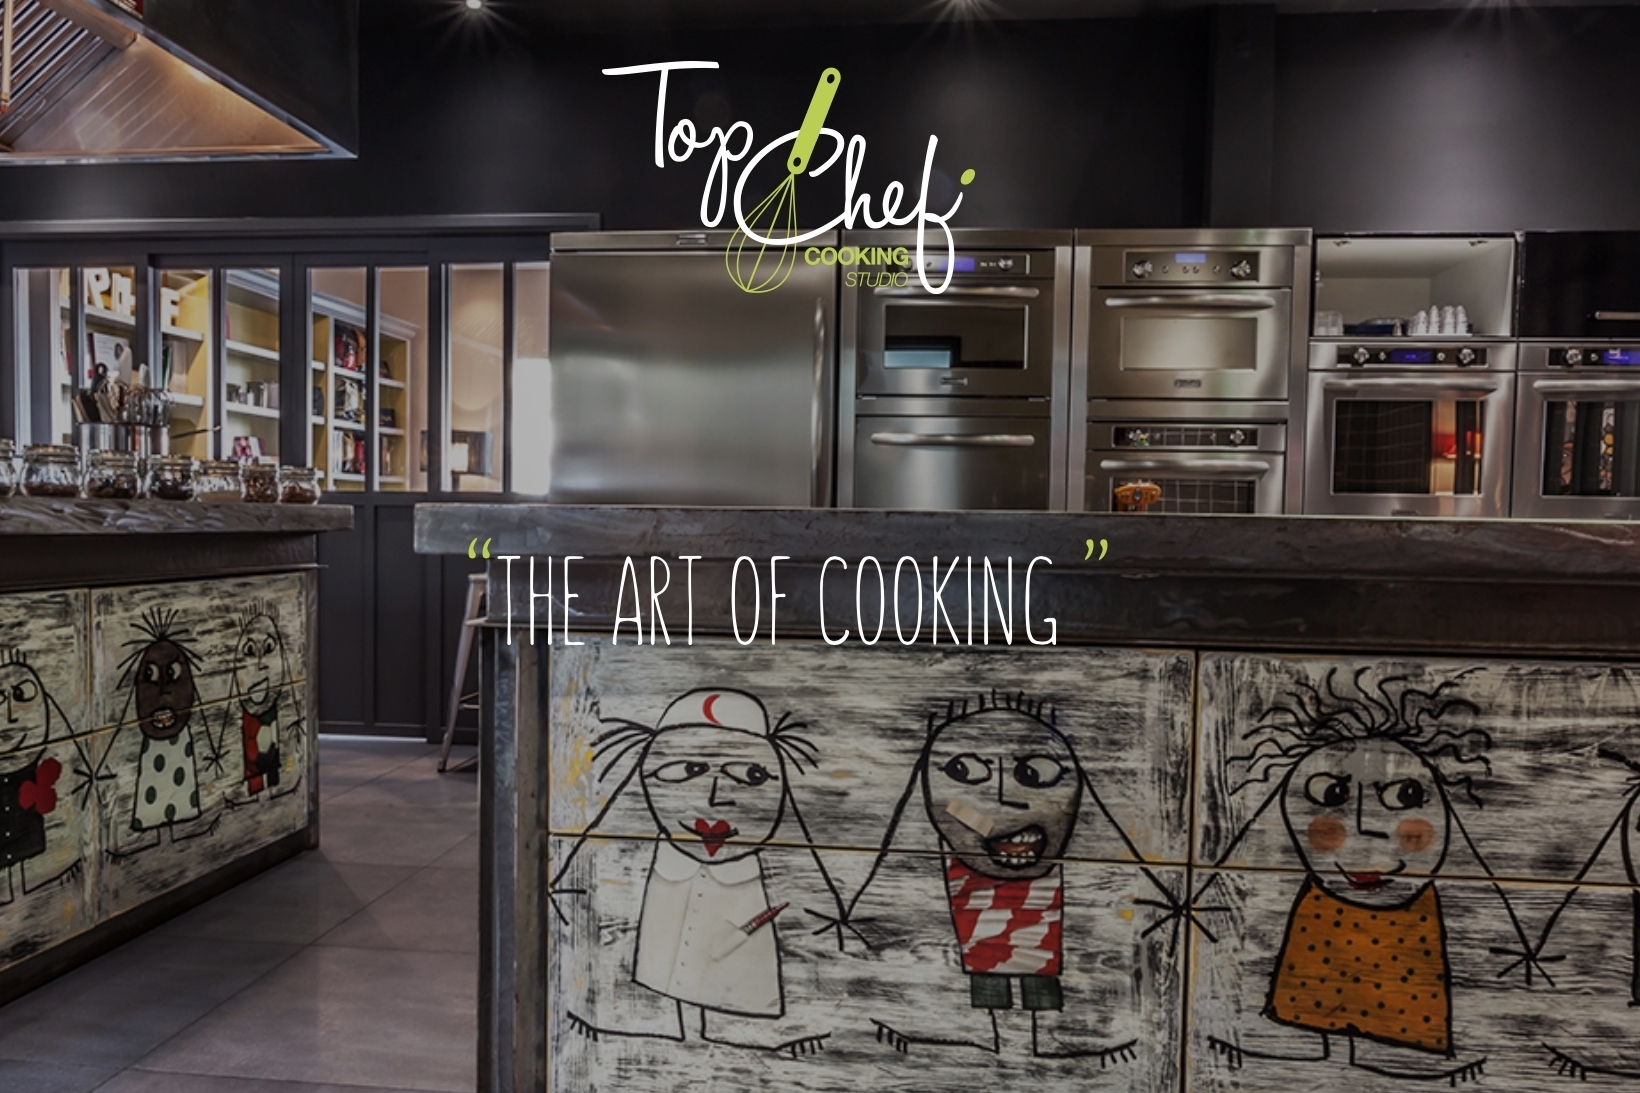 The art of cooking - top chef studio reduced.jpg